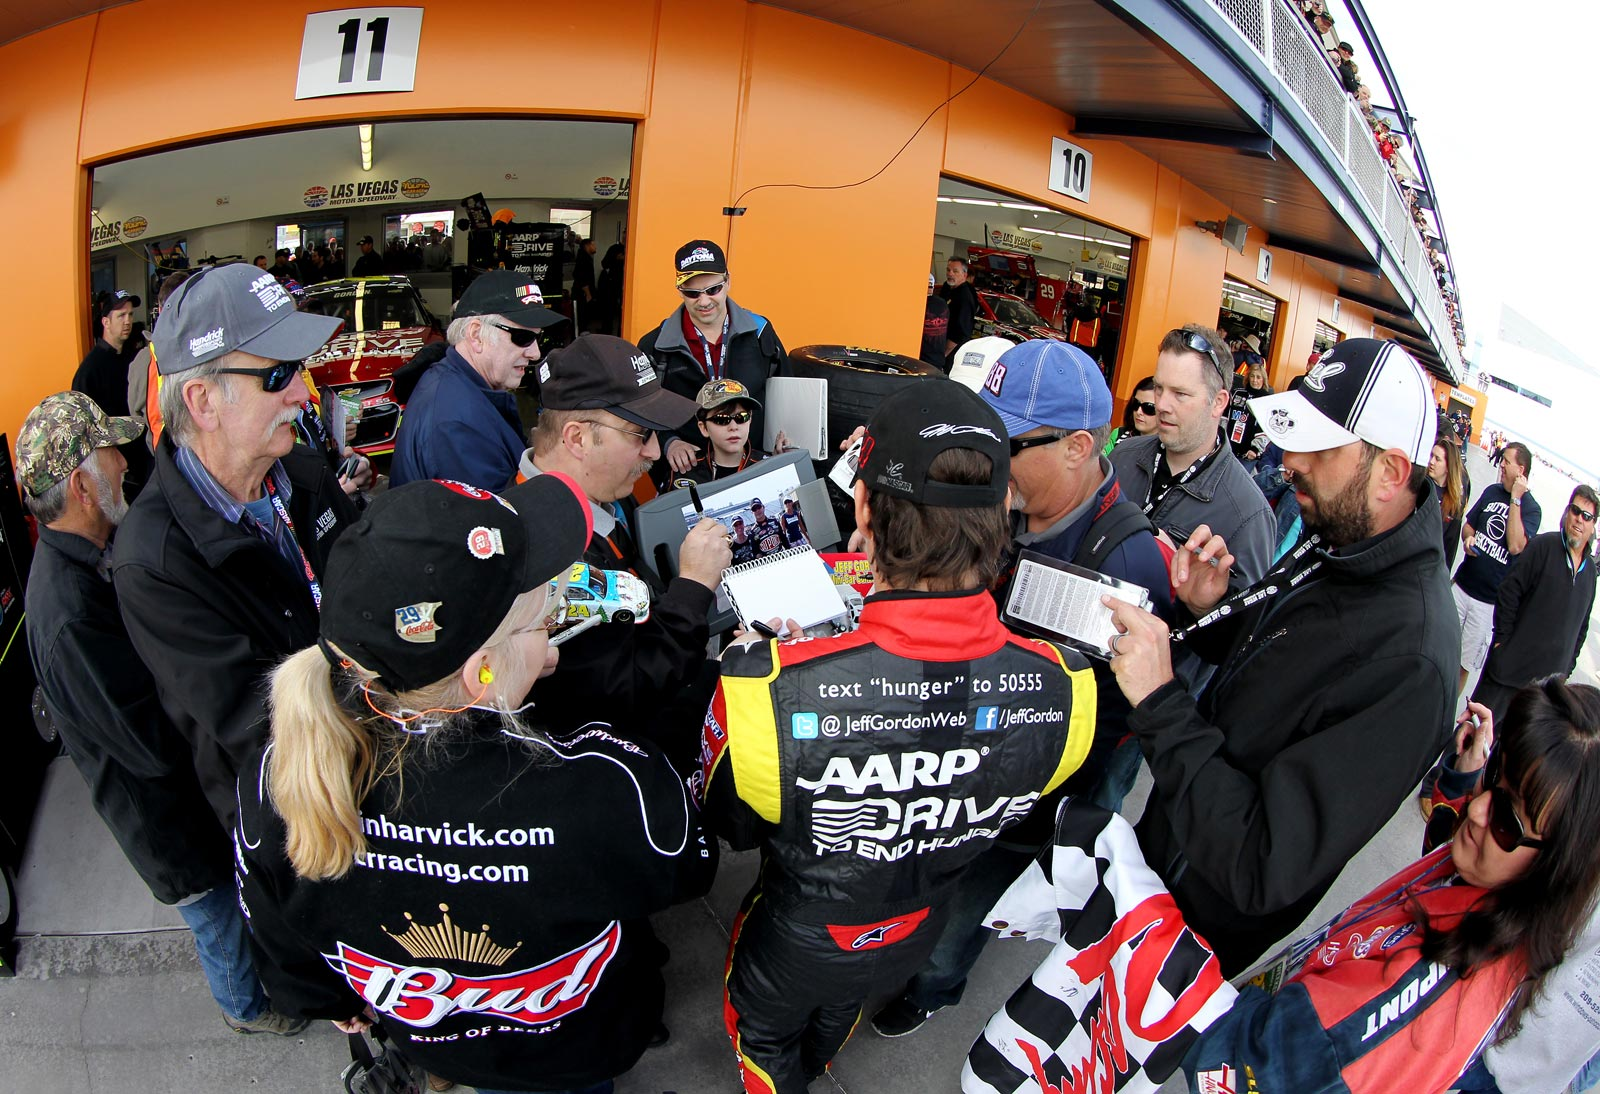 jeff-gordon-autographs-nascar-las-vegas-saturday